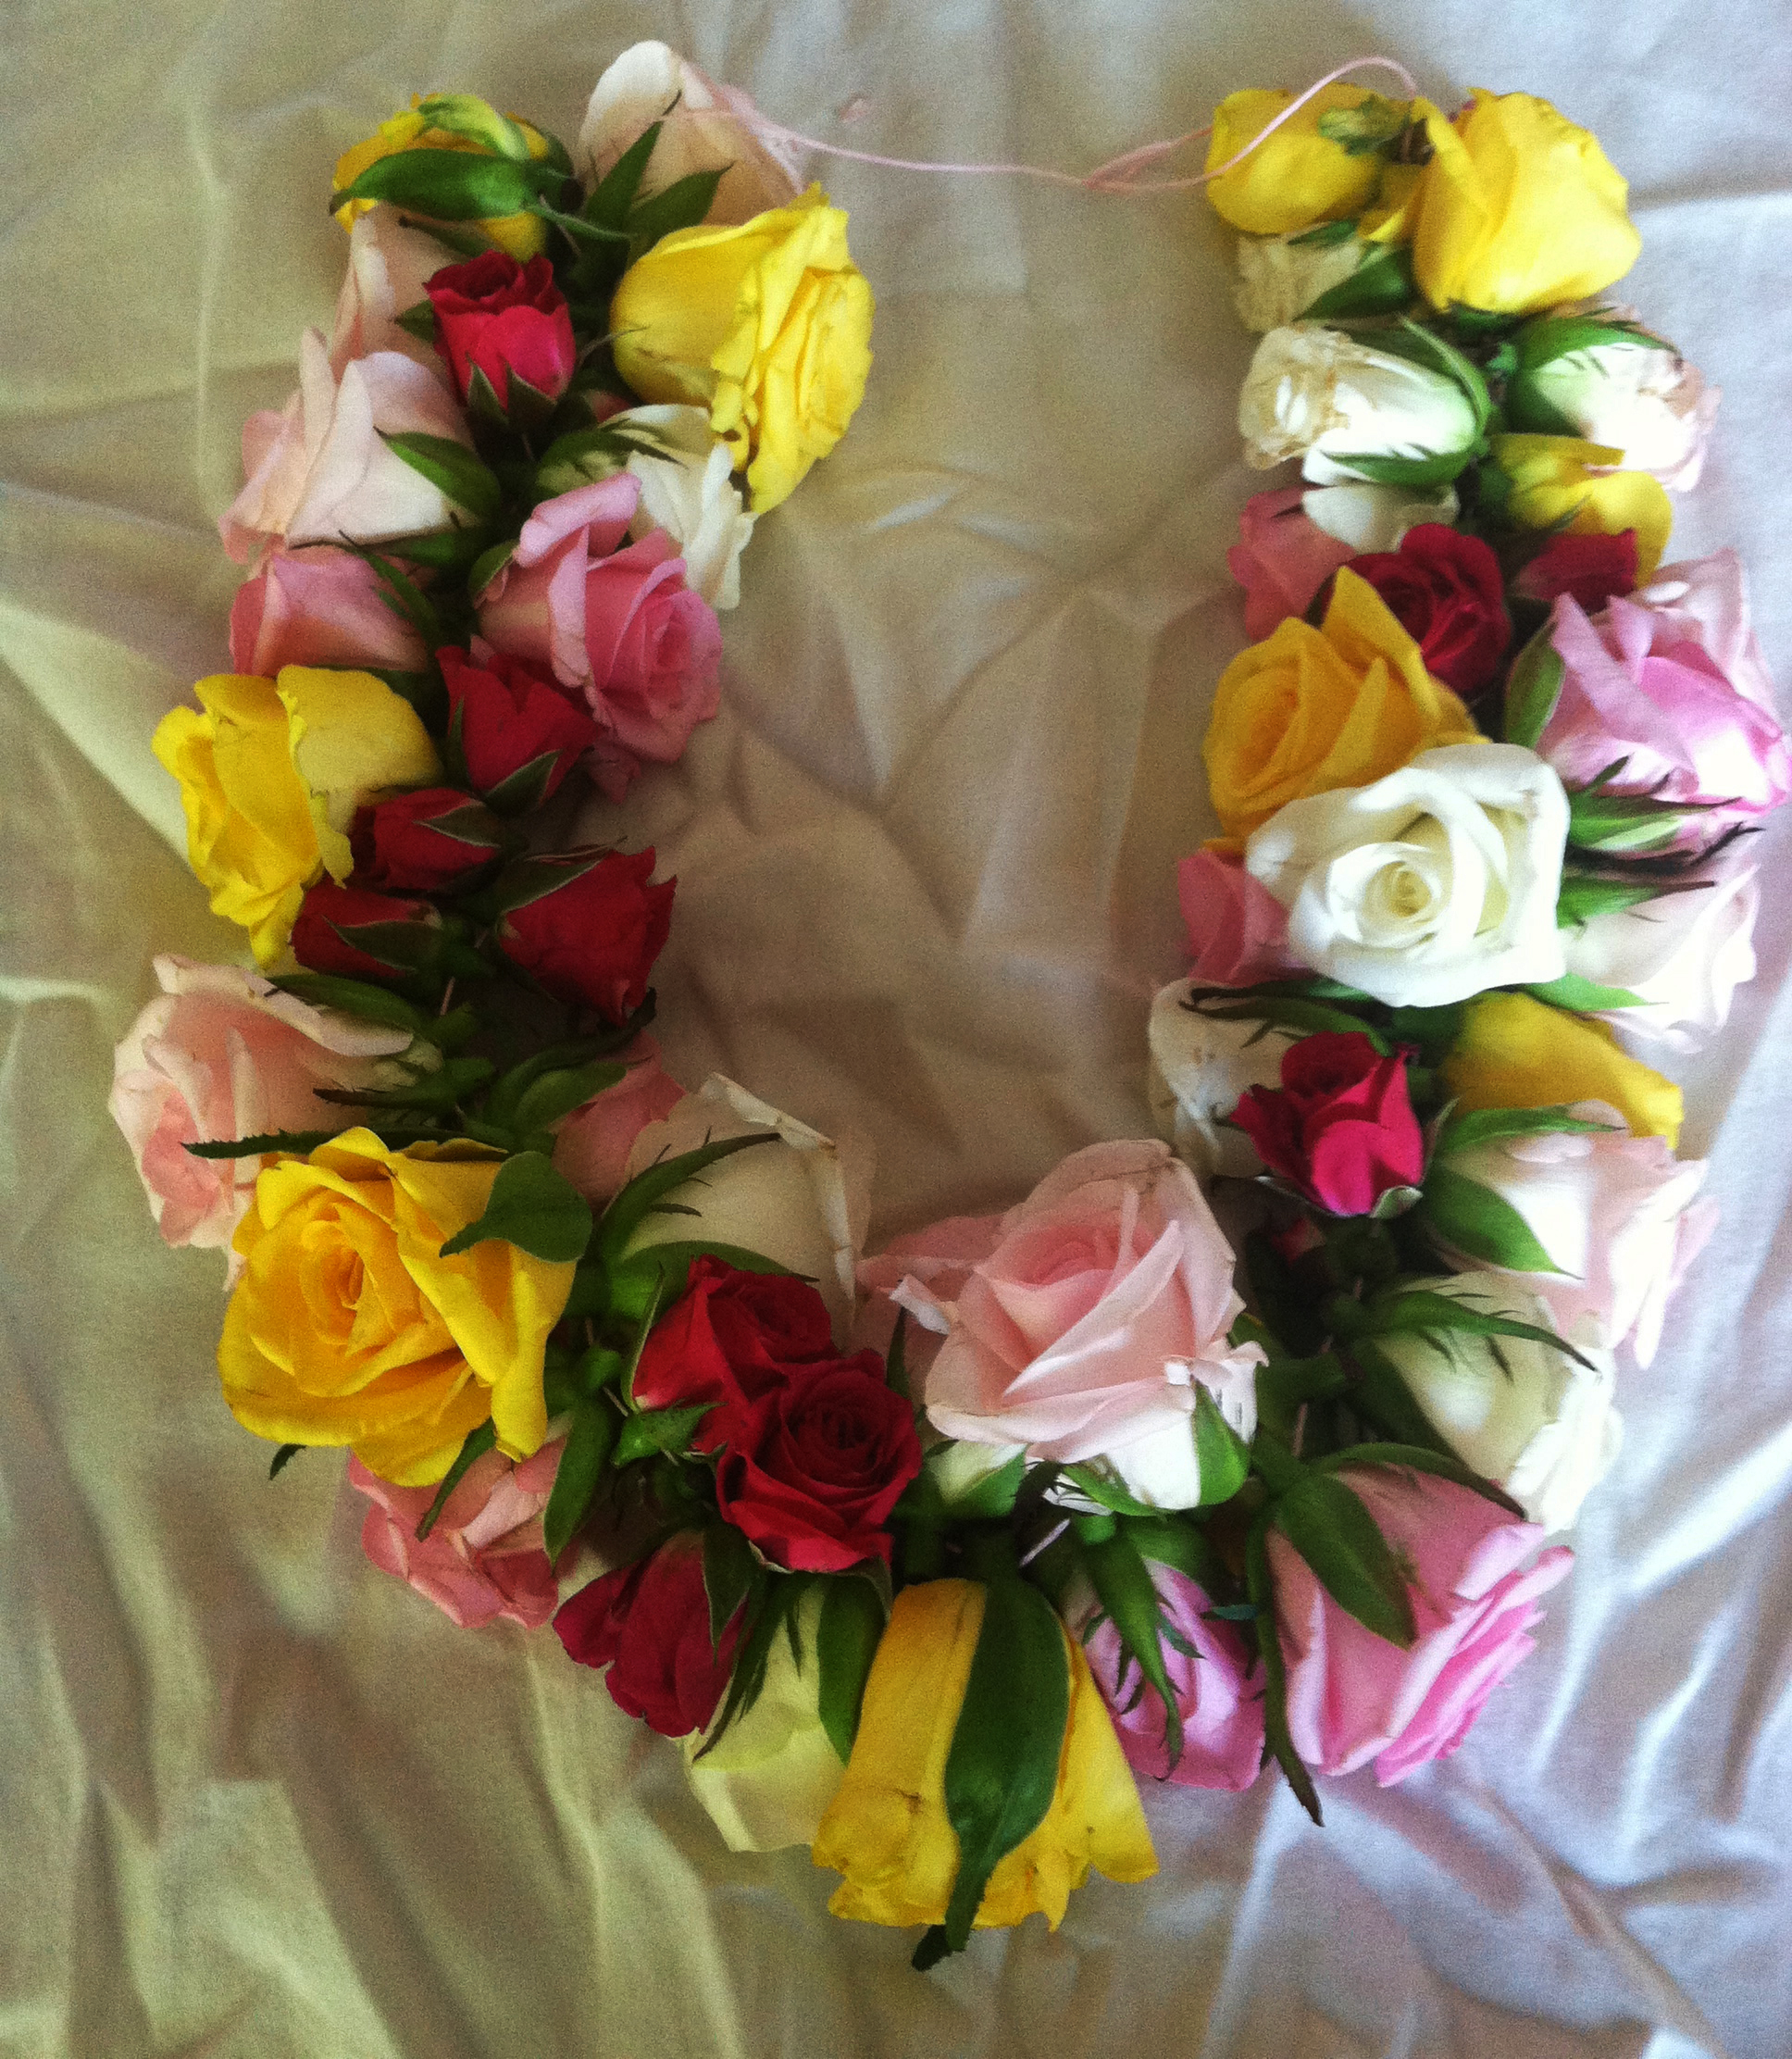 How To Make a Lei A Fresh Flower Lei With Roses